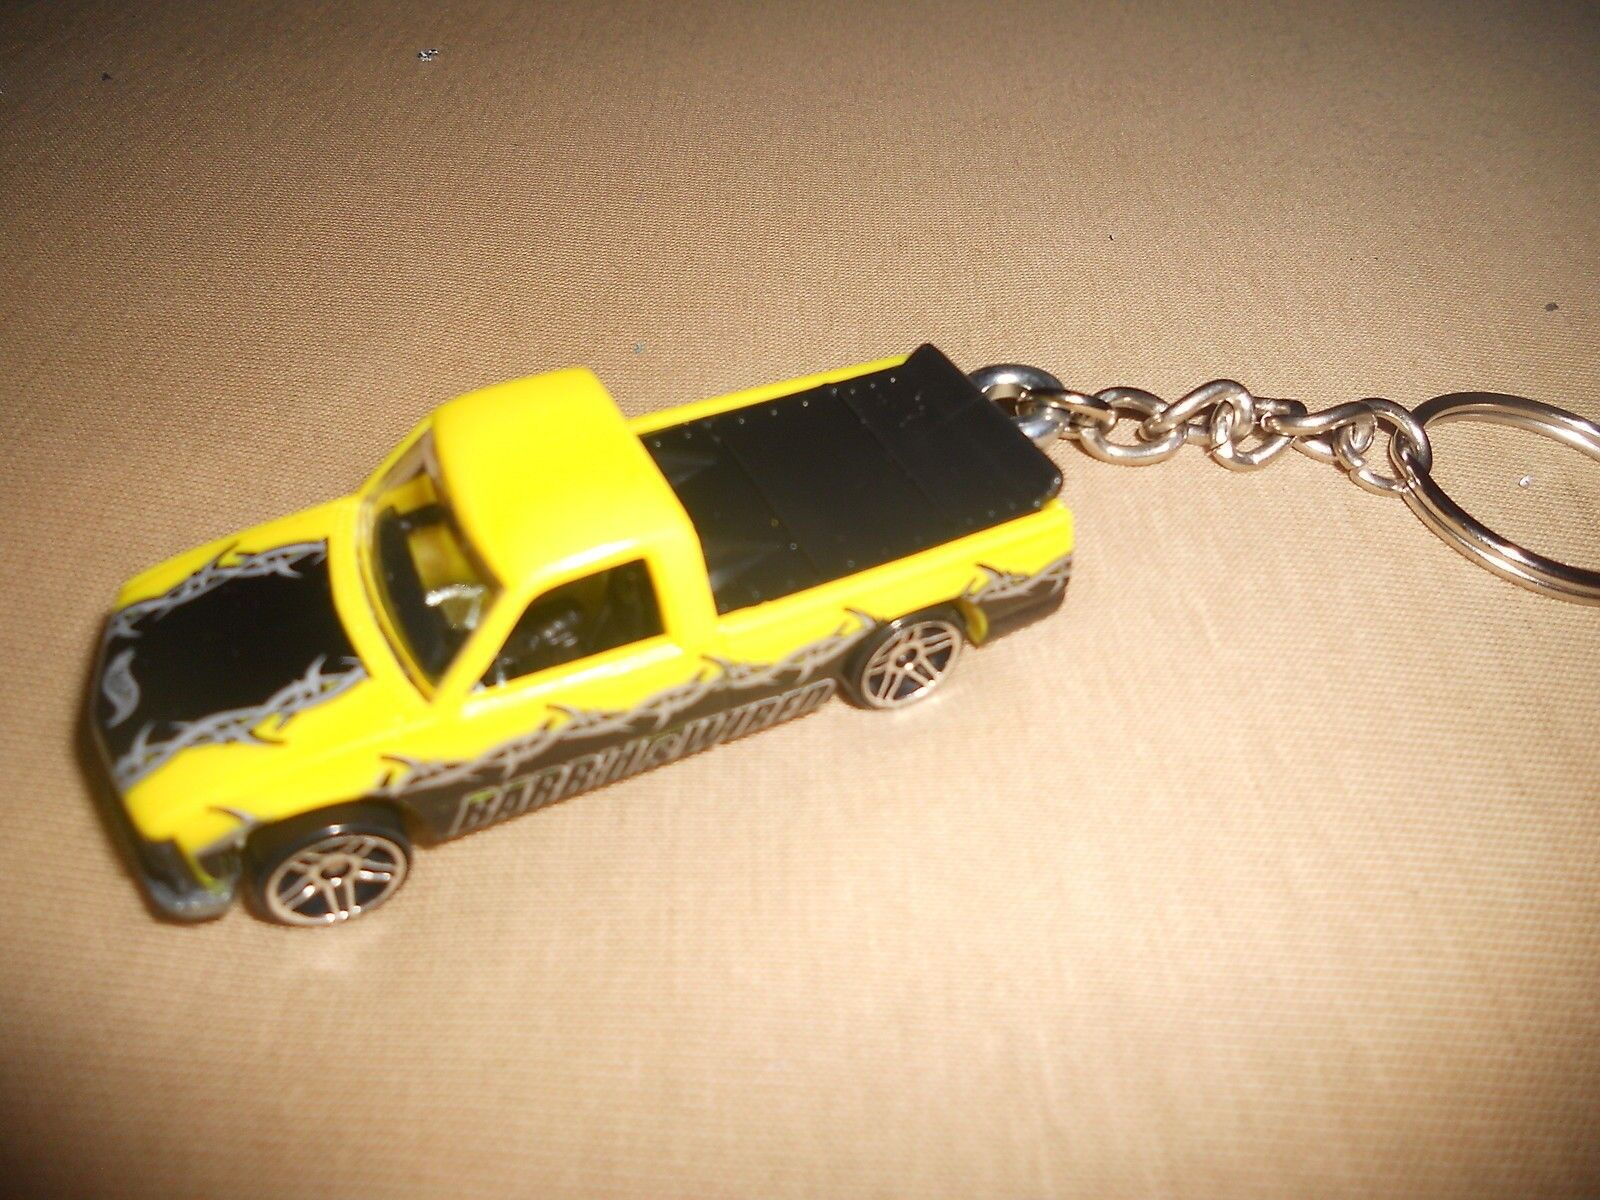 CHEVROLET PICKUP TRUCK DIECAST MODEL TOY CAR KEYCHAIN KEYRING NEW YELLOW / BLACK